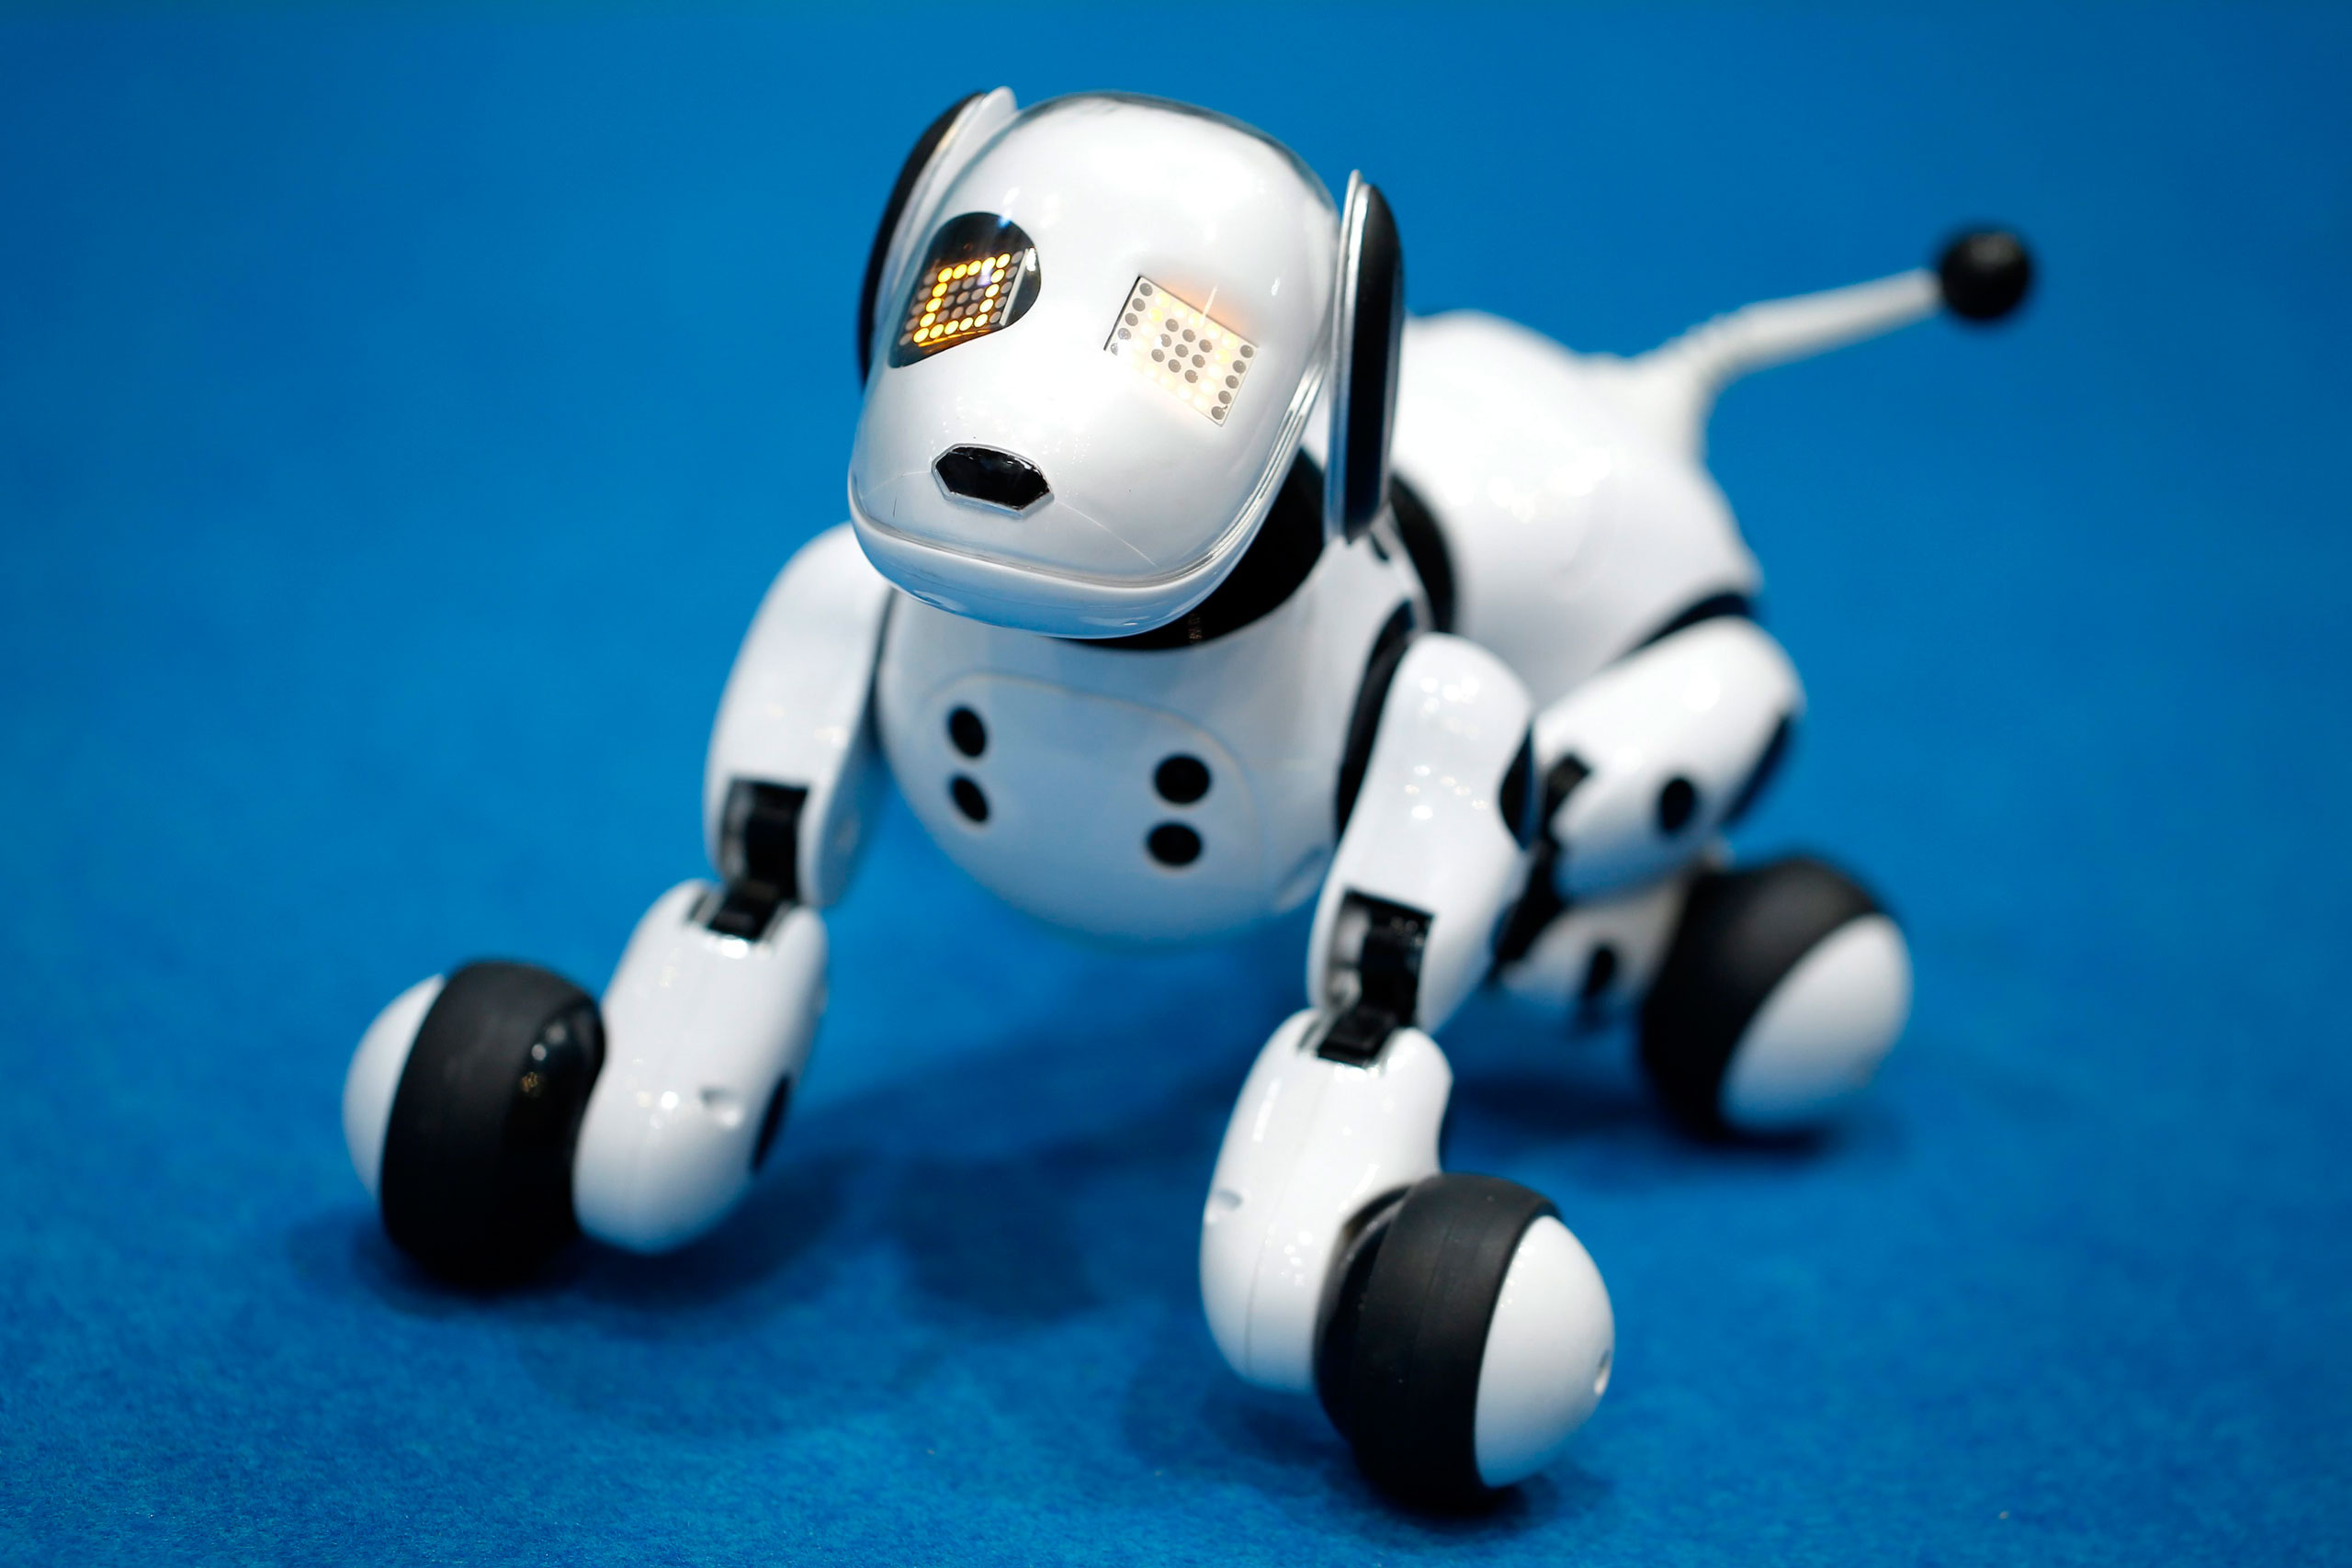 'Hello! Zoomer' a robotic dog, can recognize over 45 English and Japanese words.